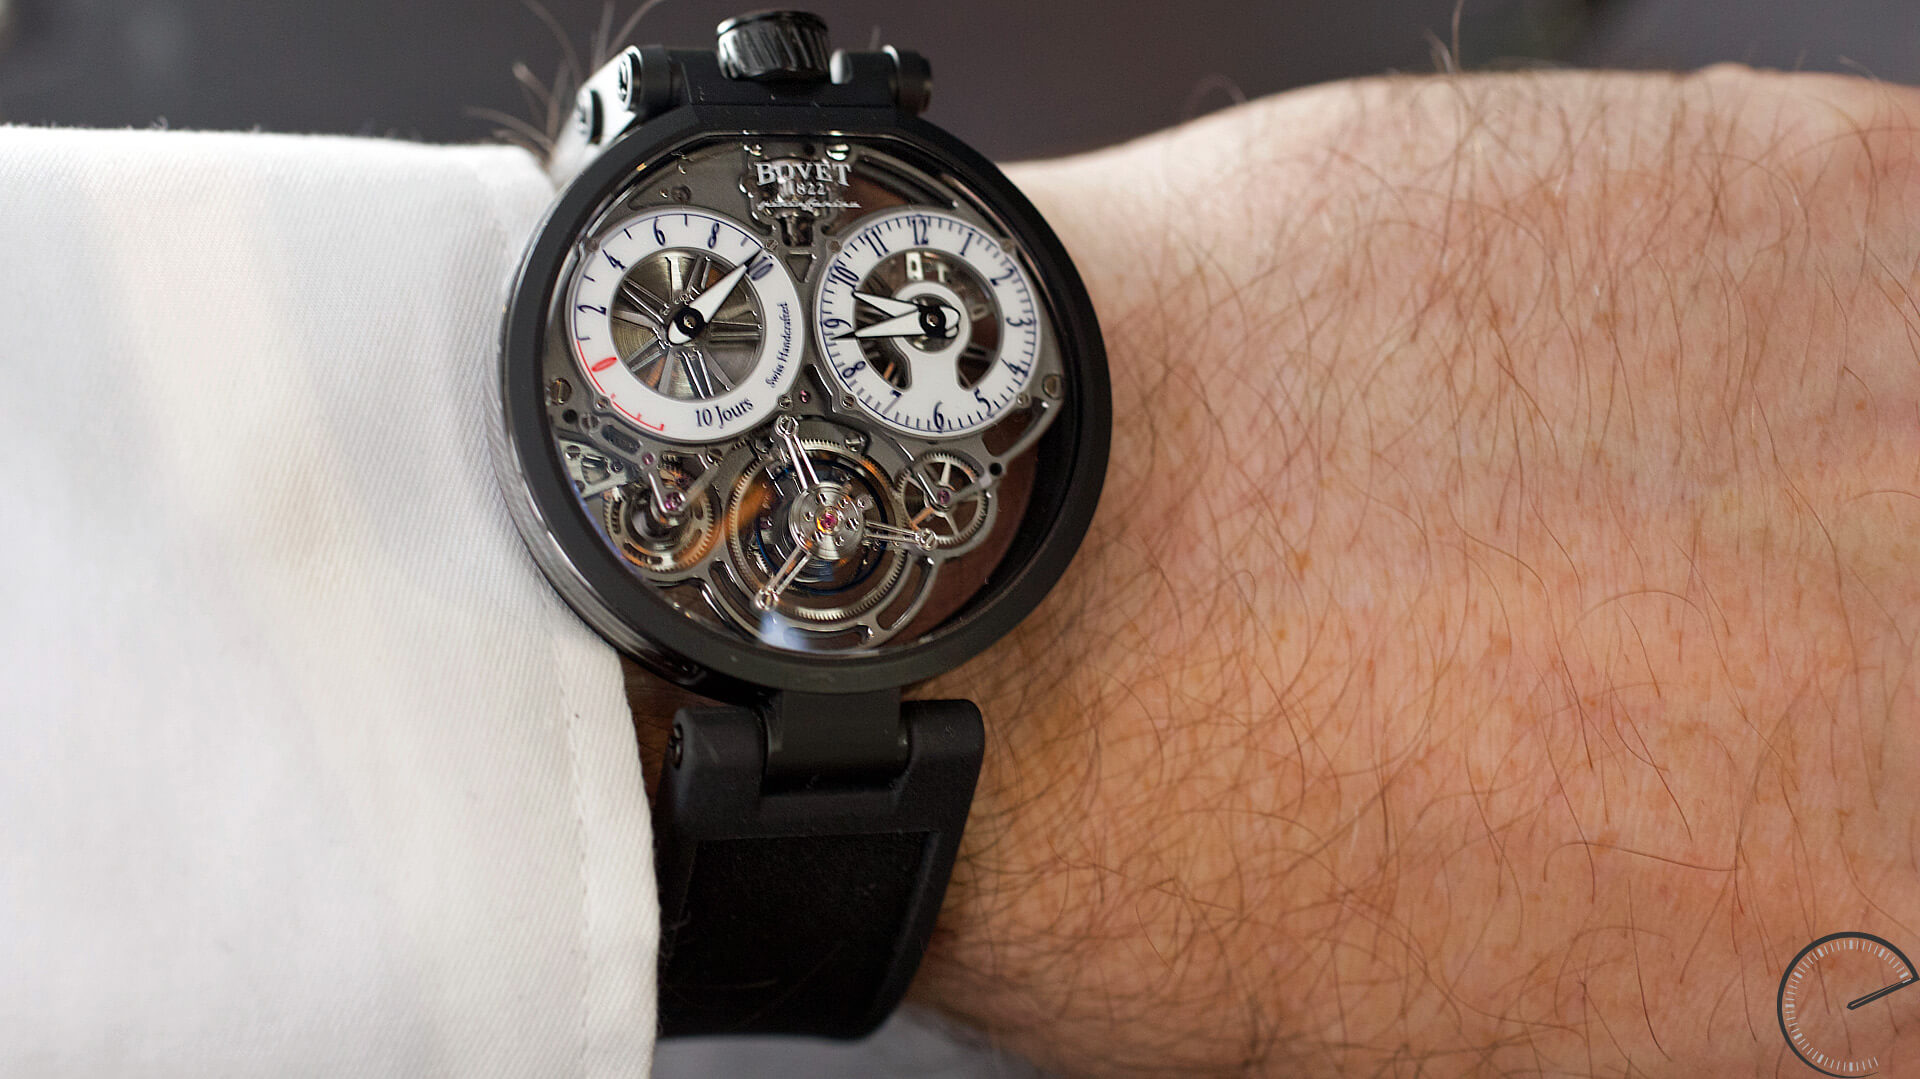 Bovet_Flying_Tourbillon_Ottanta_Sei_Wrist1 - ESCAPEMENT magazine - watch reviews by Angus Davies